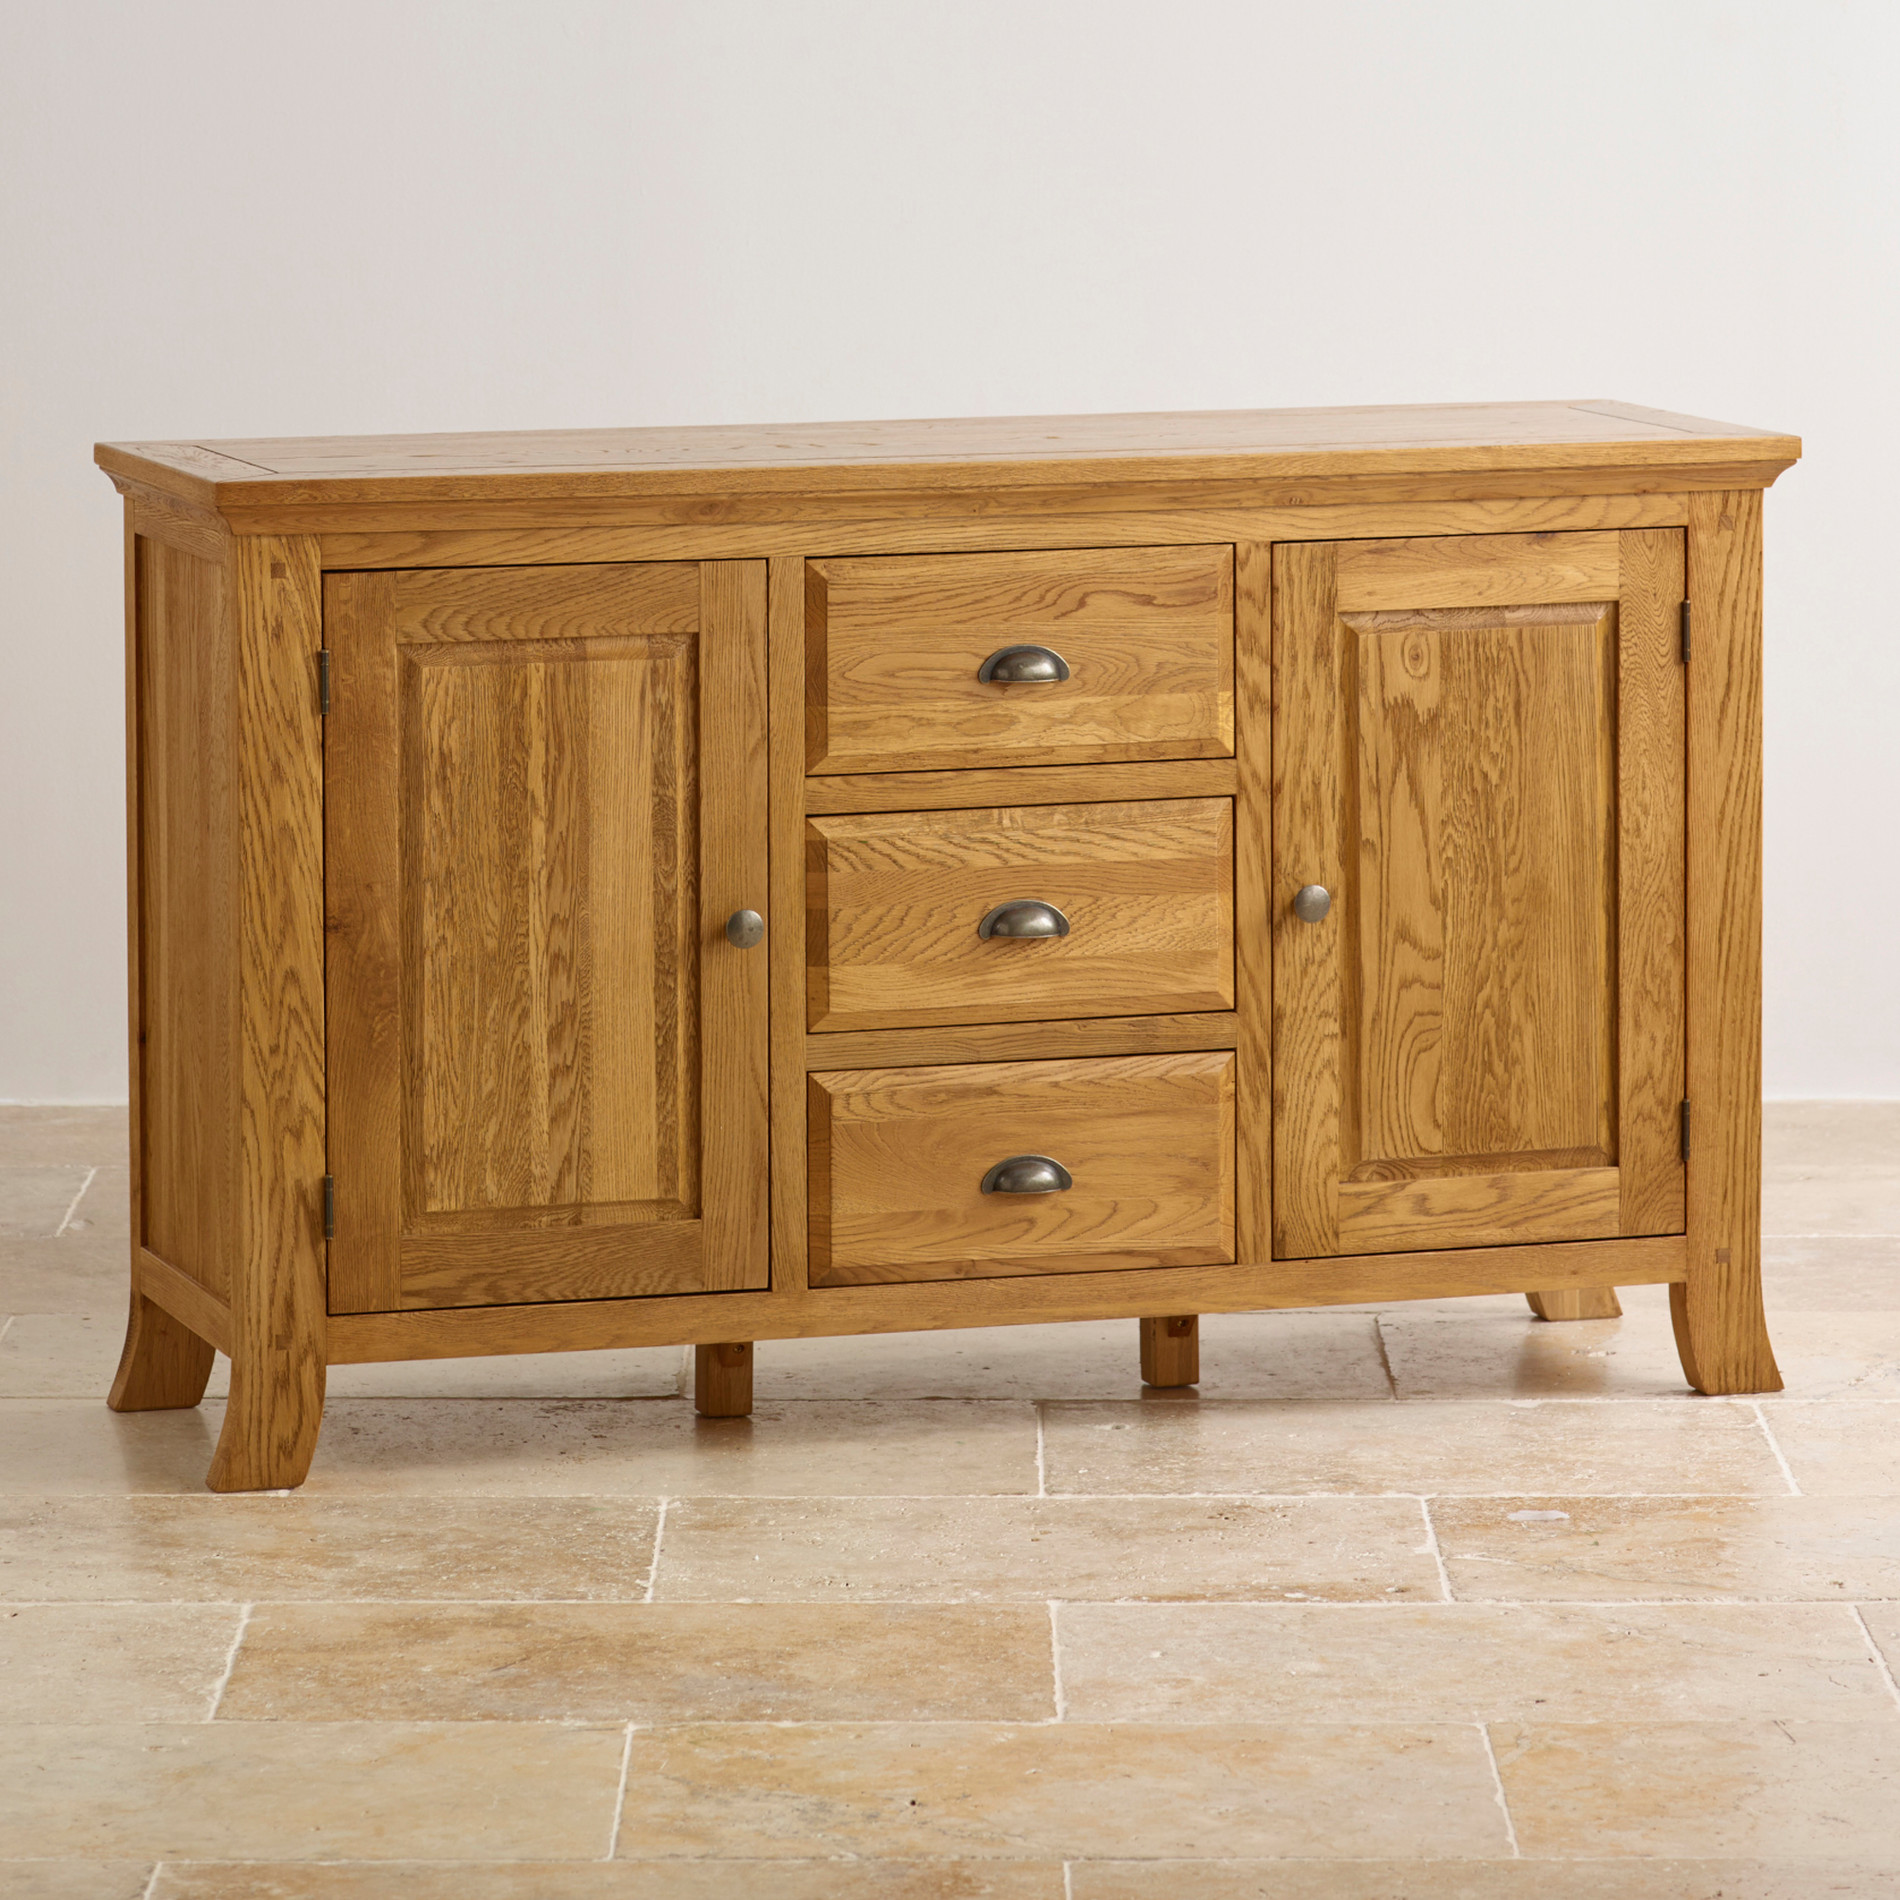 Taunton large sideboard in rustic solid oak oak for Solid oak furniture